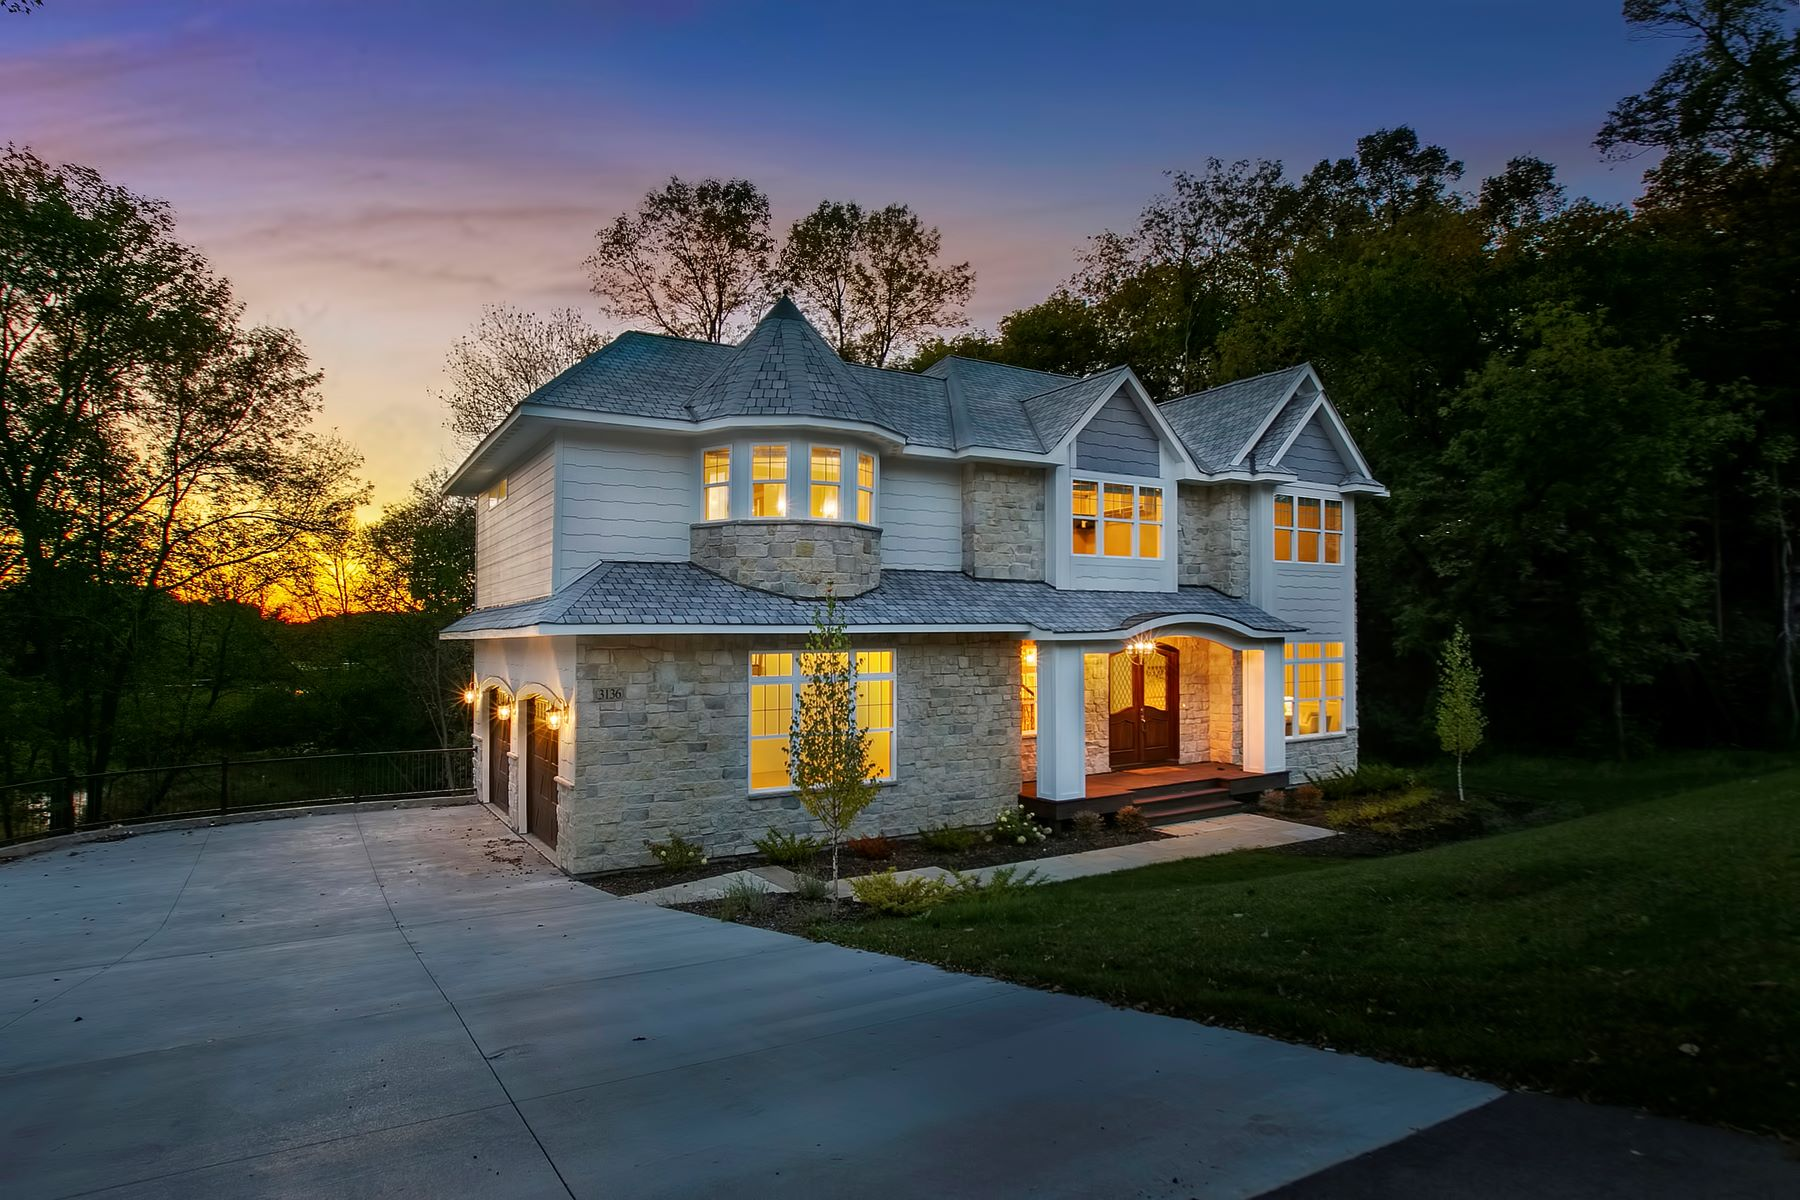 Single Family Homes für Verkauf beim Timelessly Elegant Custom Built Home Nestled on the Banks of Shaver Lake 3136 County Road 101 S, Minnetonka, Minnesota 55391 Vereinigte Staaten